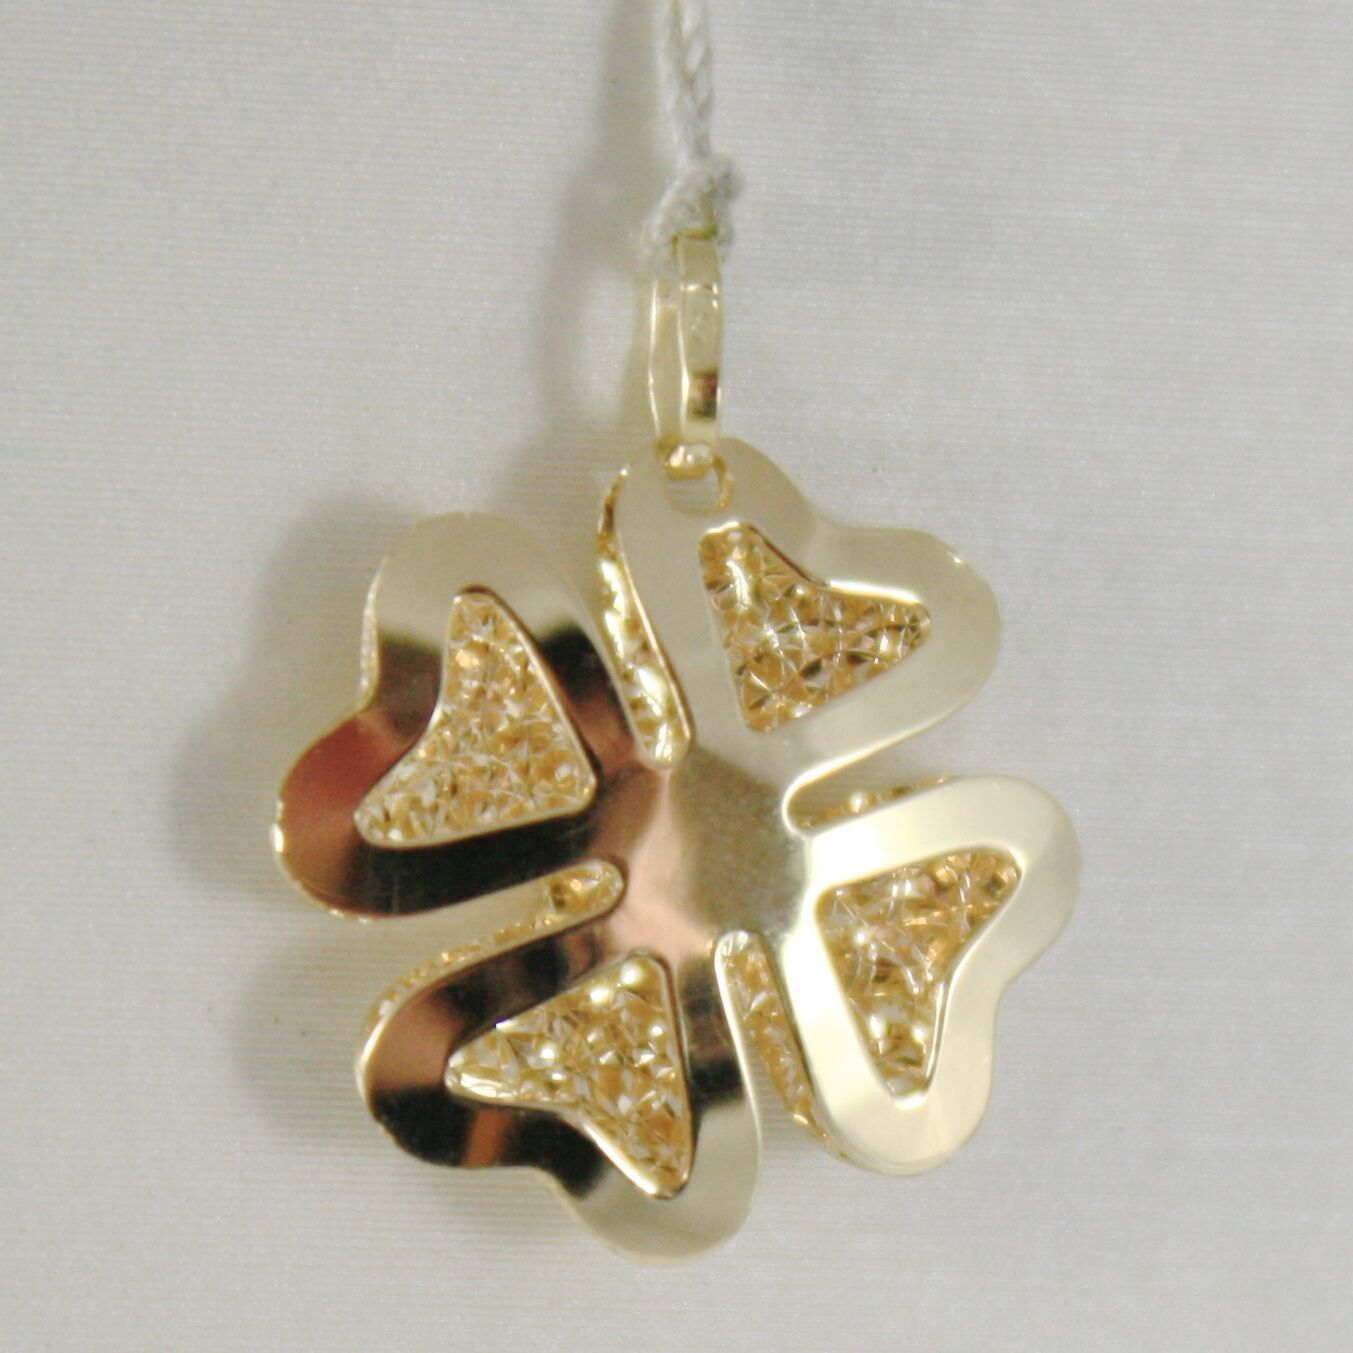 18K YELLOW GOLD PENDANT CHARM LUCKY FOUR LEAF CLOVER FINELY WORKED MADE IN ITALY